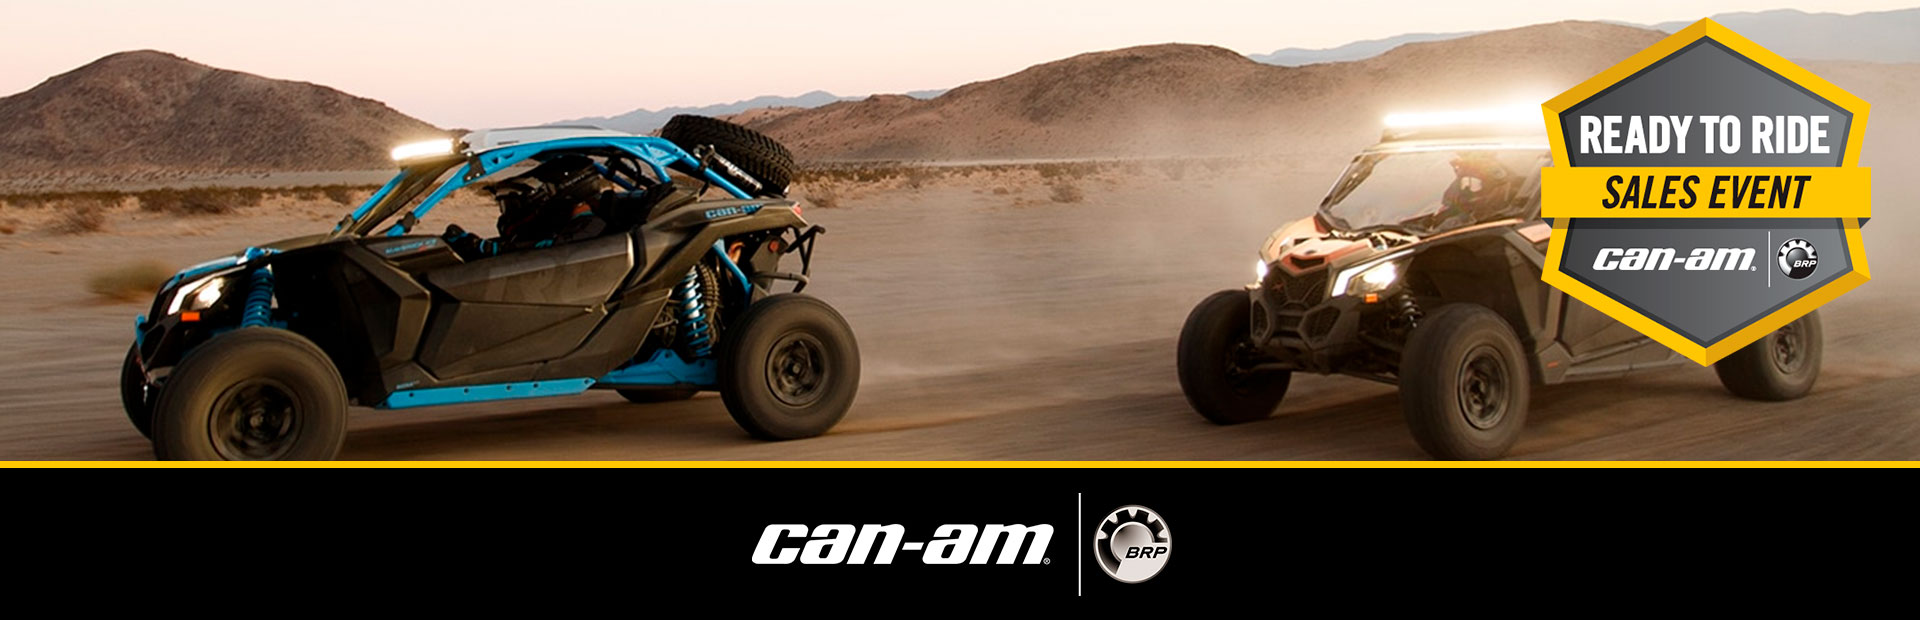 Can-Am: Ready To Ride Sales Event - X3 MAVERICK